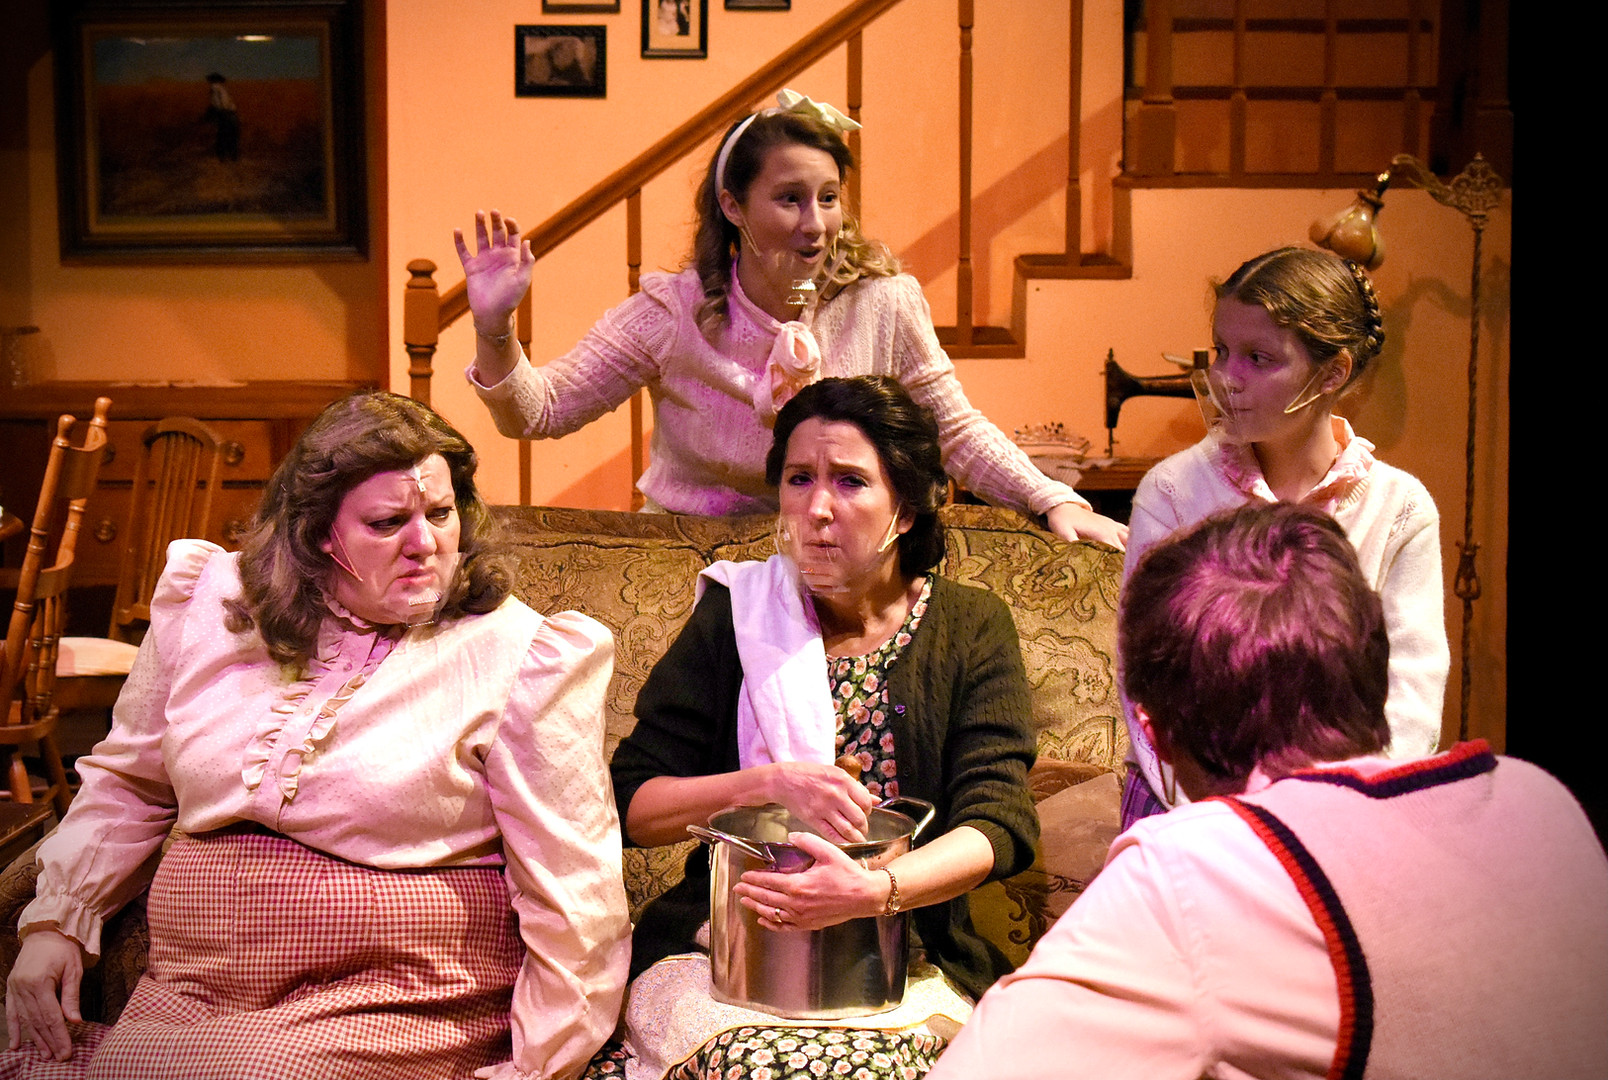 """""""Brighton Beach Memoirs."""" Community Theatre Leage, Williamsport, PA. 2020 Director: Jonathan Hetler Costume Design: William A Young (Left to Right) Samantha Storm as Blanche, Marie Fox as Kate ) on sofa), Sloan Wood as Nora (behind sofa), Adam Fox as Eugene, Hannah Bastian as Laurie"""